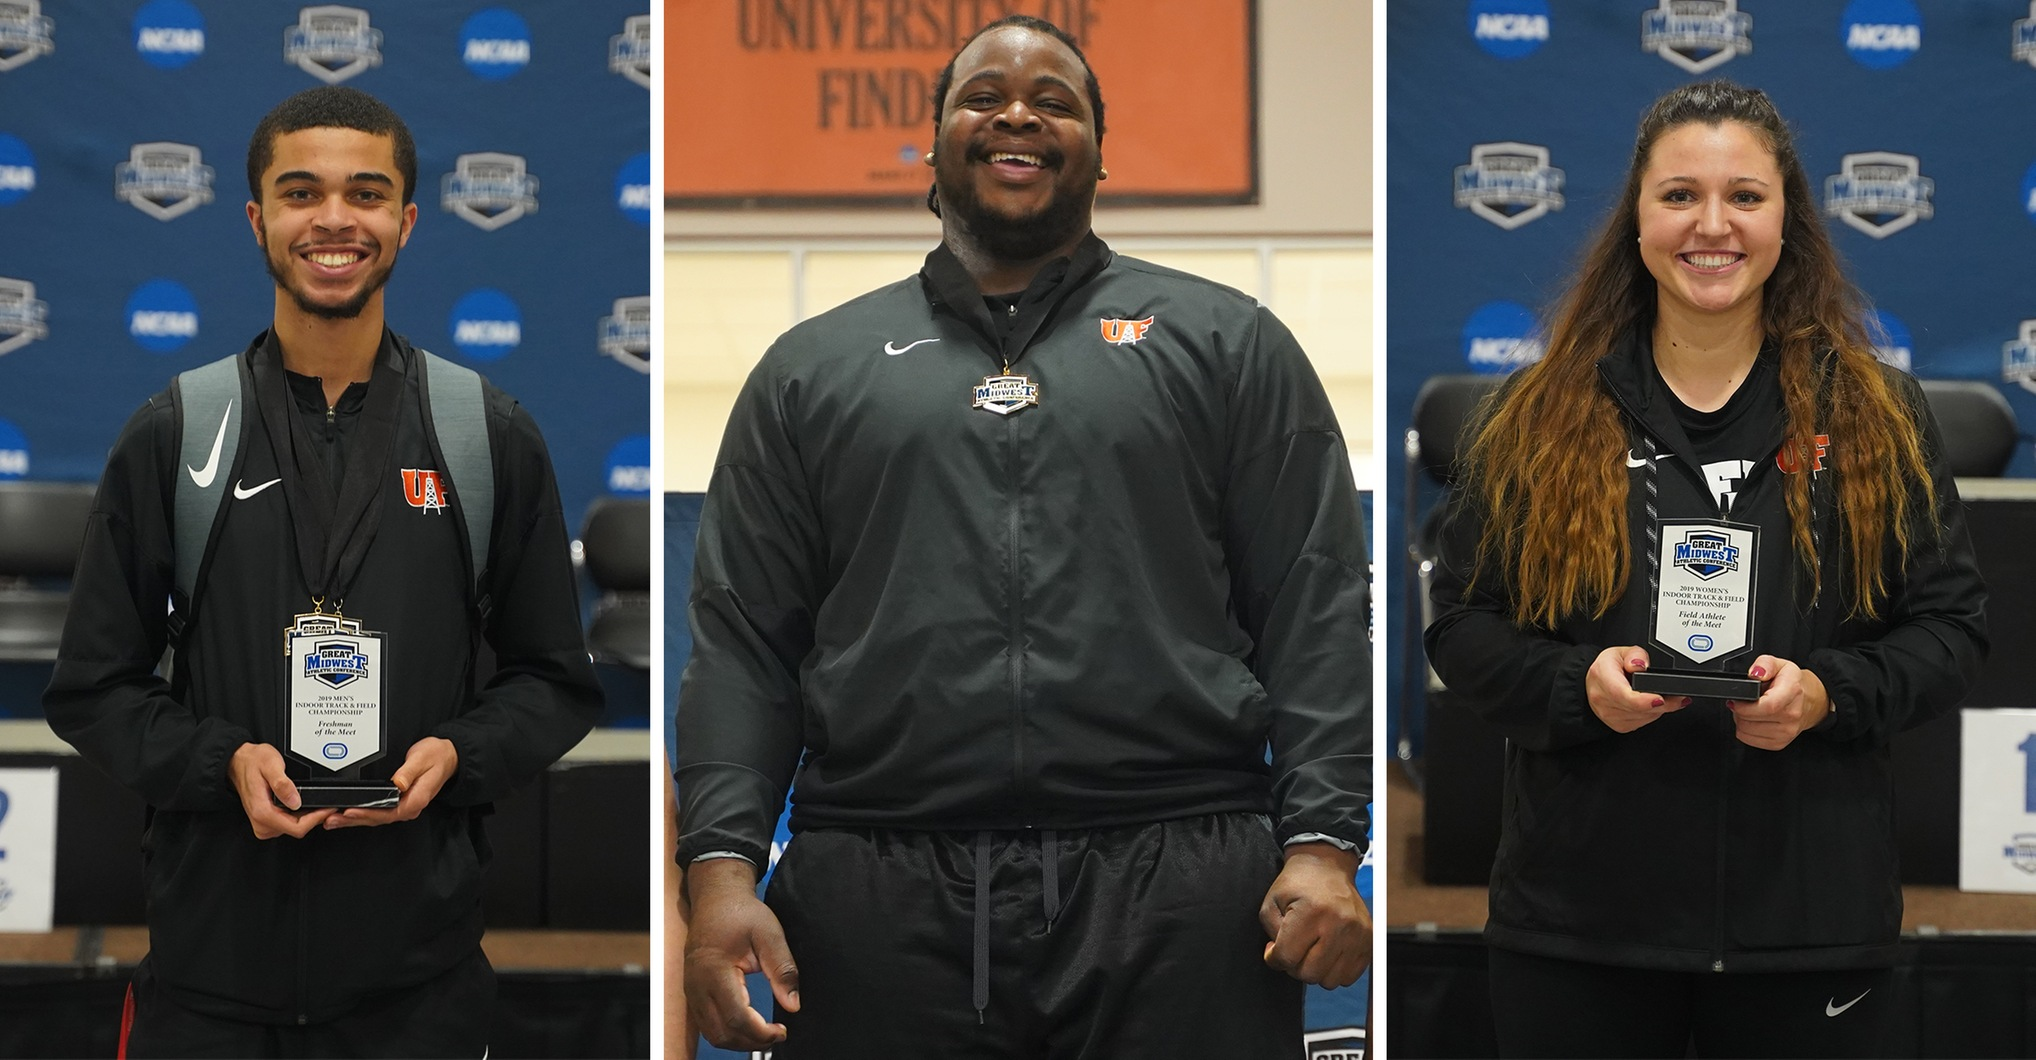 Oilers Electrify Crowd on Final Day of G-MAC Championship | Henry Sets DII Shot Put Record